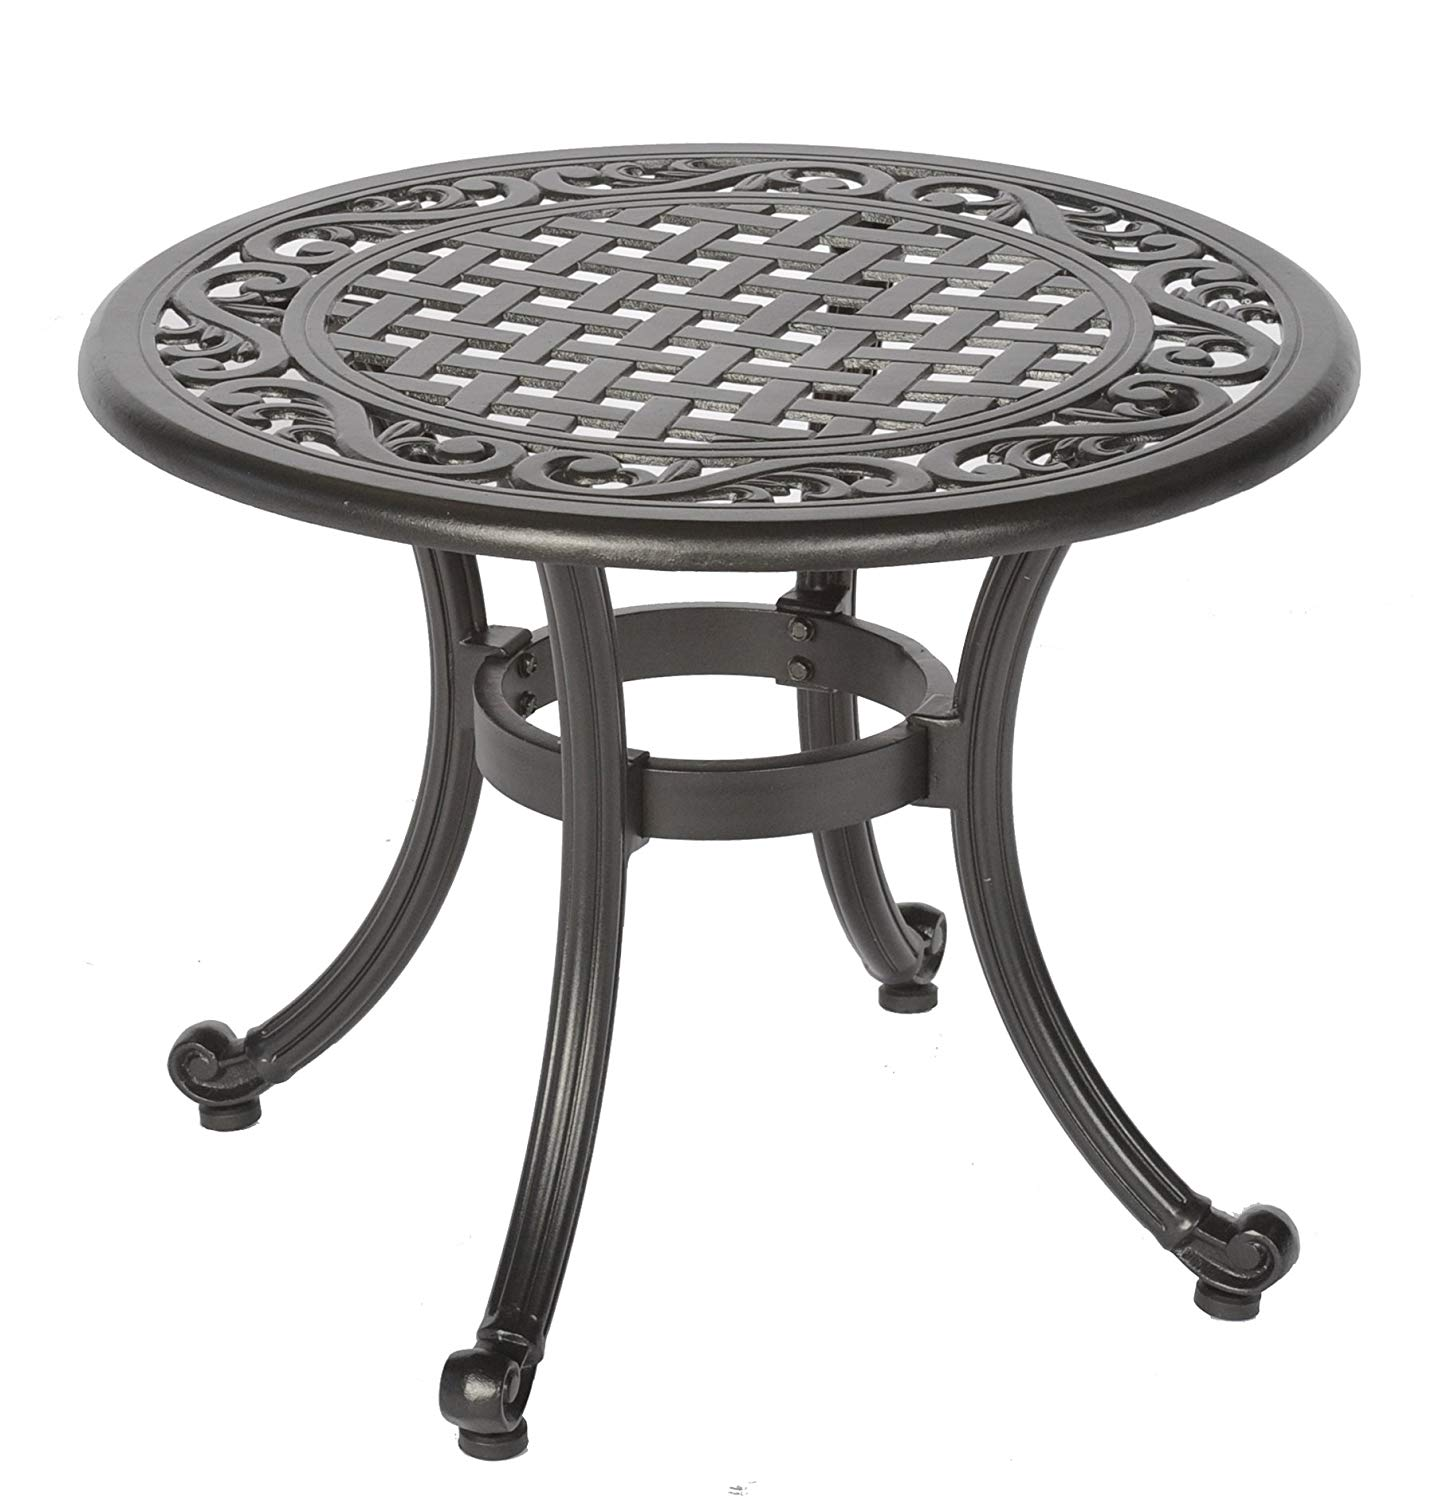 meadow decor kingston side table black patio pll outdoor accent tables garden antique dining kitchen hardware pulls red asian lamp console behind sofa threshold windham one door